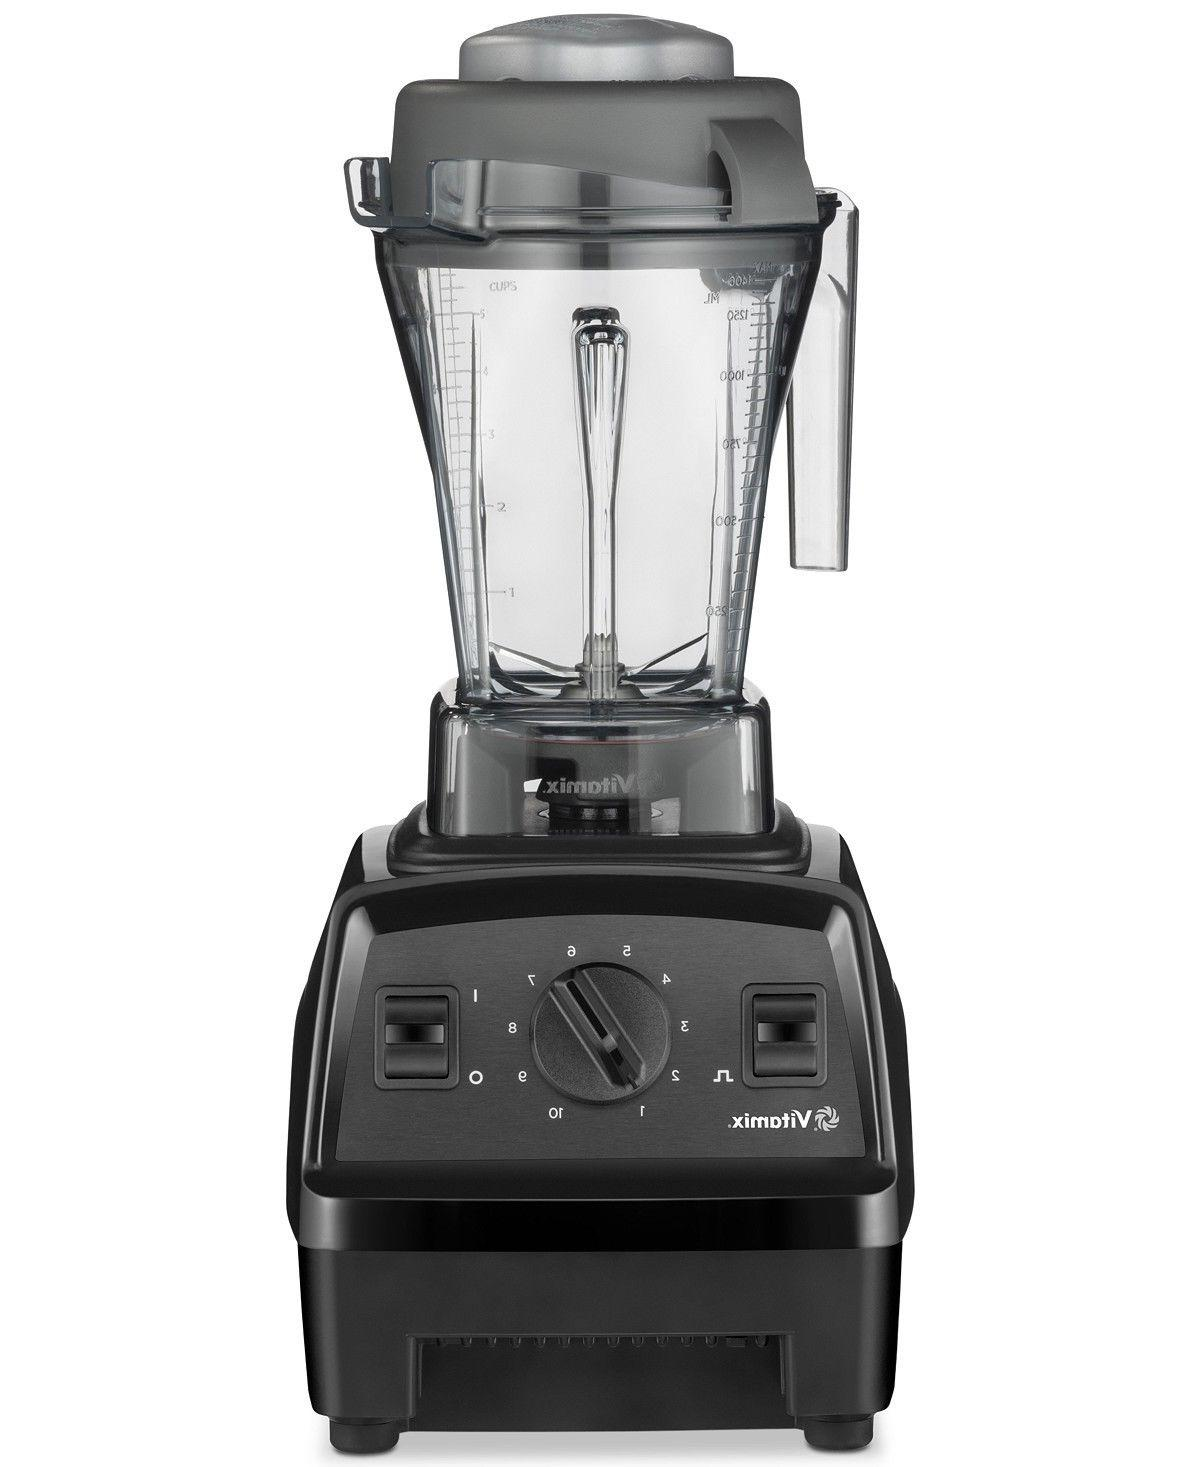 BRAND NEW ORIGINAL Vitamix E310 Explorian Series Blender Bla